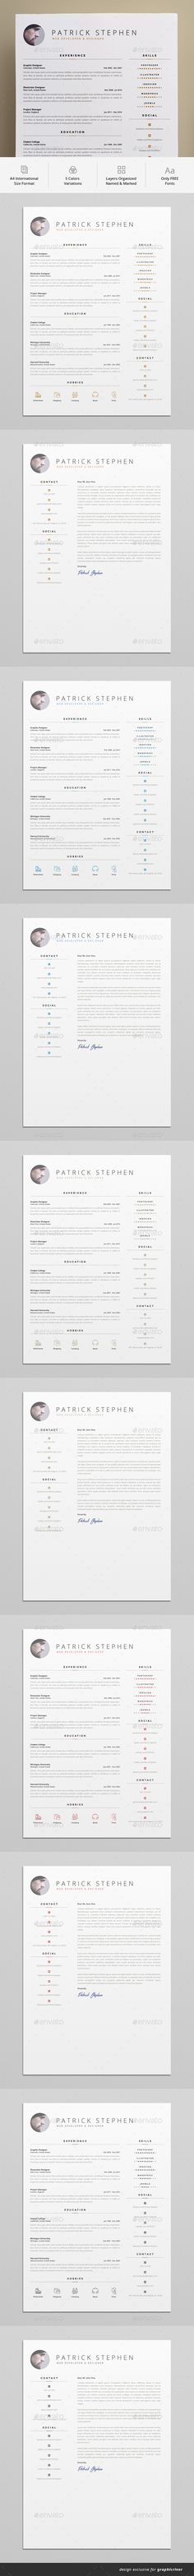 Blog Media Kit Template 2 Page Stationery Templates Stationery - Simple Format For Resume